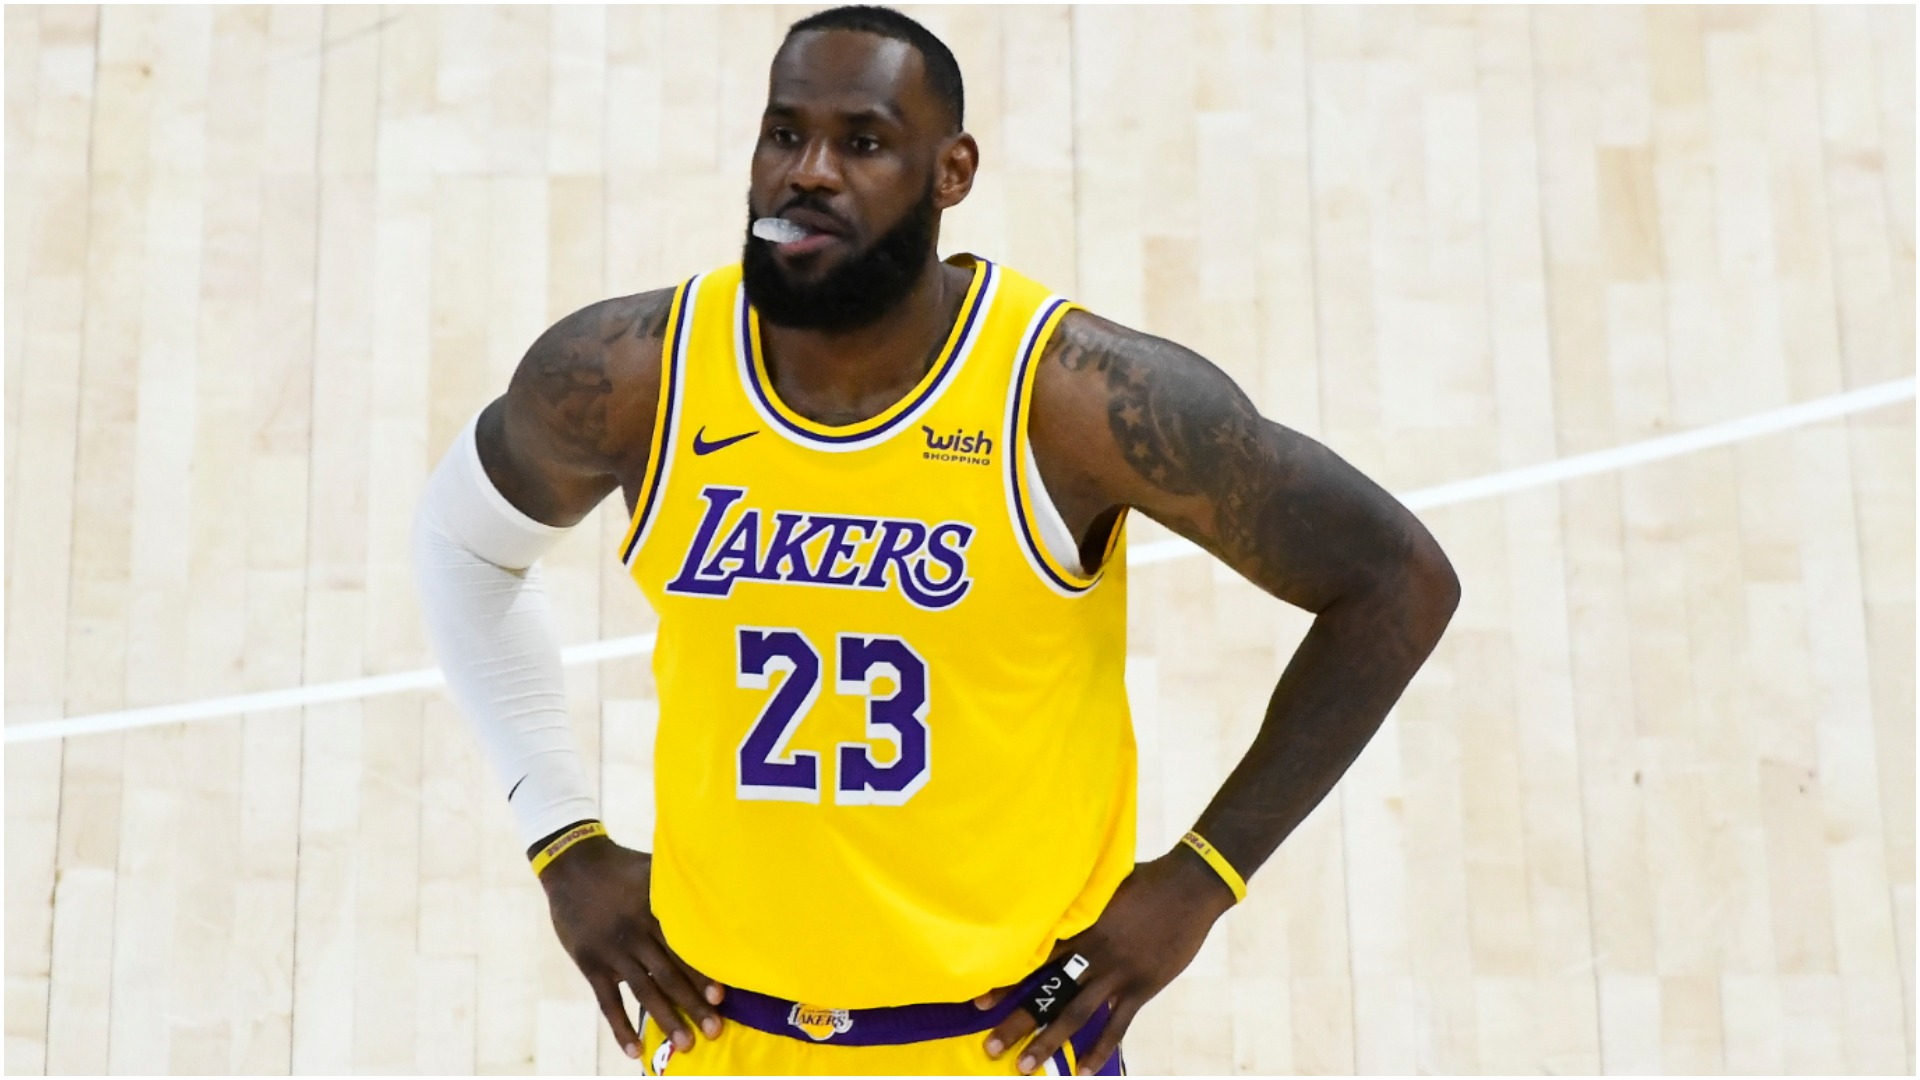 The in-form Utah Jazz made 22 shots from deep as they eased to victory against LeBron James and the Los Angeles Lakers.